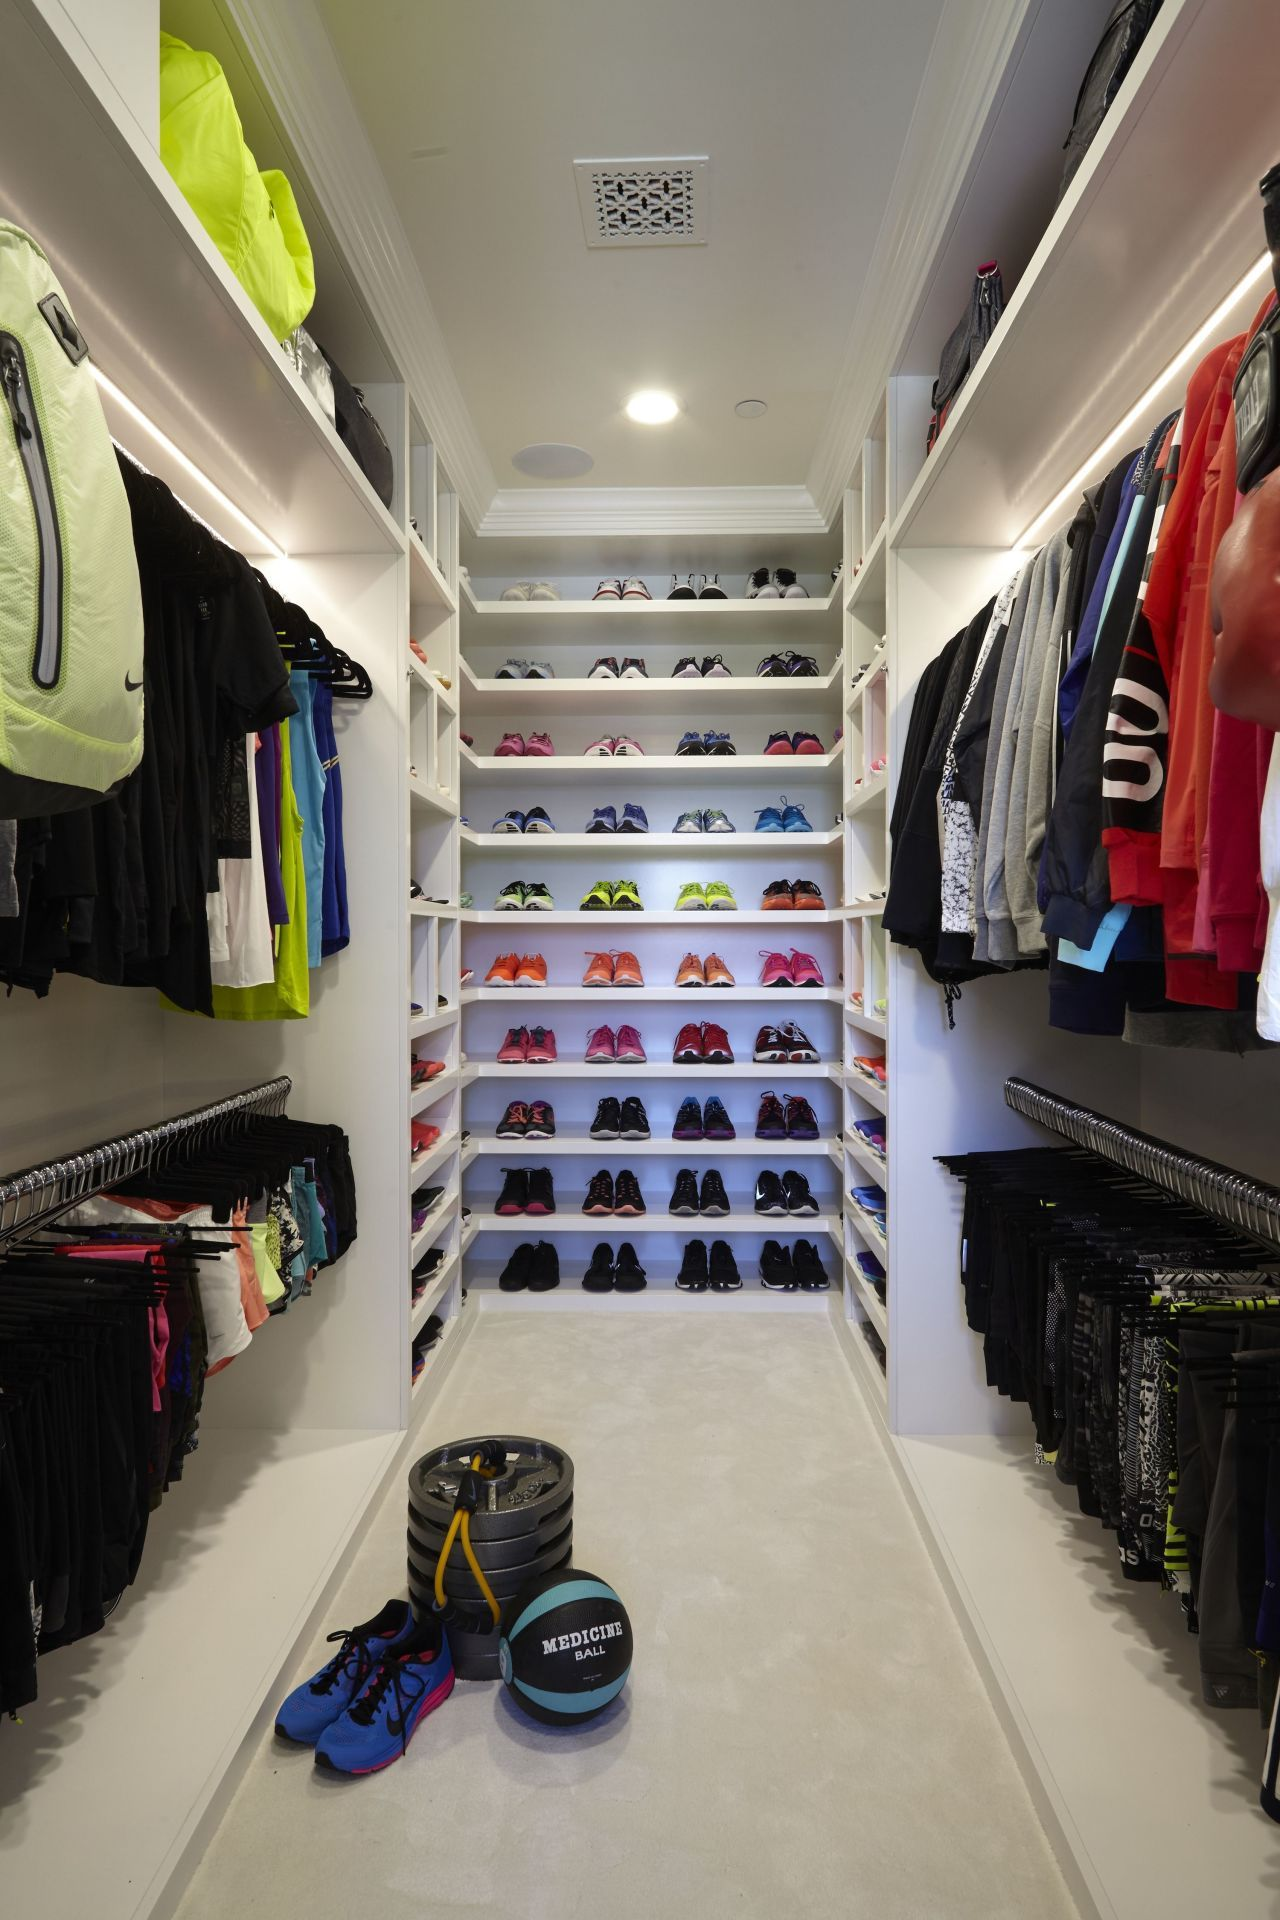 Workoutgeargoals Khloe Kardashian Has A Huge Walk In Closet Devoted To Workout Clothes And